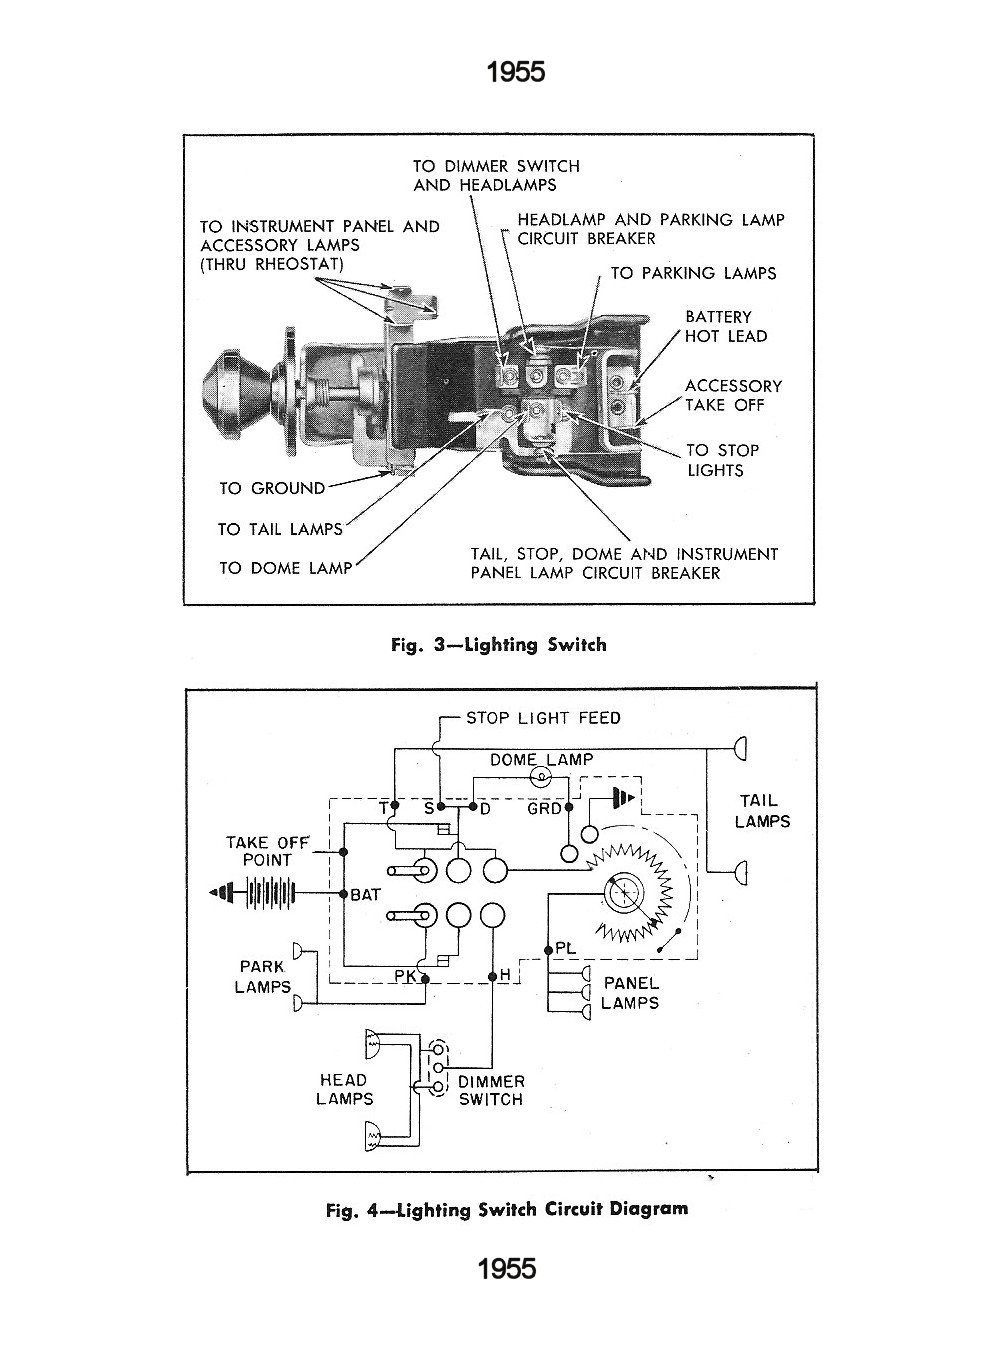 1970 vw headlight switch diagram wiring diagram schematics Ford Headlight Switch Problems 64 ford headlight switch diagram wiring diagram detailed vw alternator diagram 1970 vw headlight switch diagram